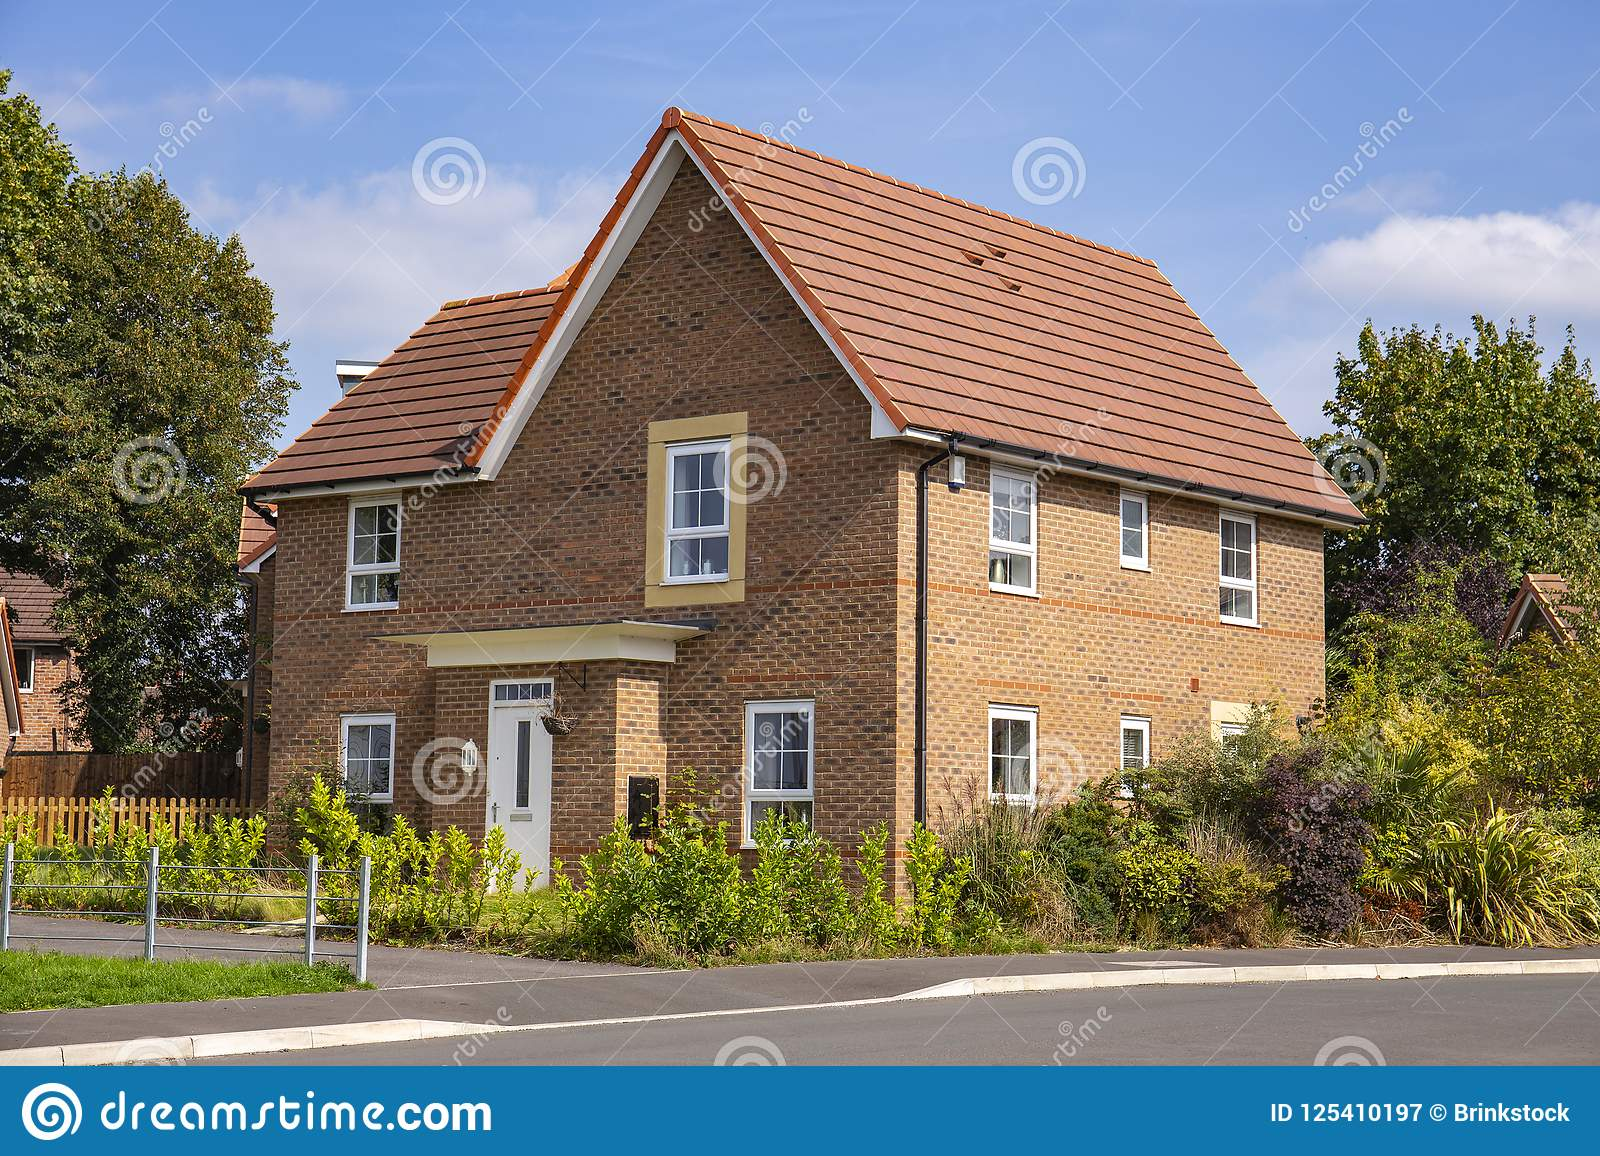 Luxury Detached Home On A New Housing Estate In Cheshire England United  Kingdom Europe